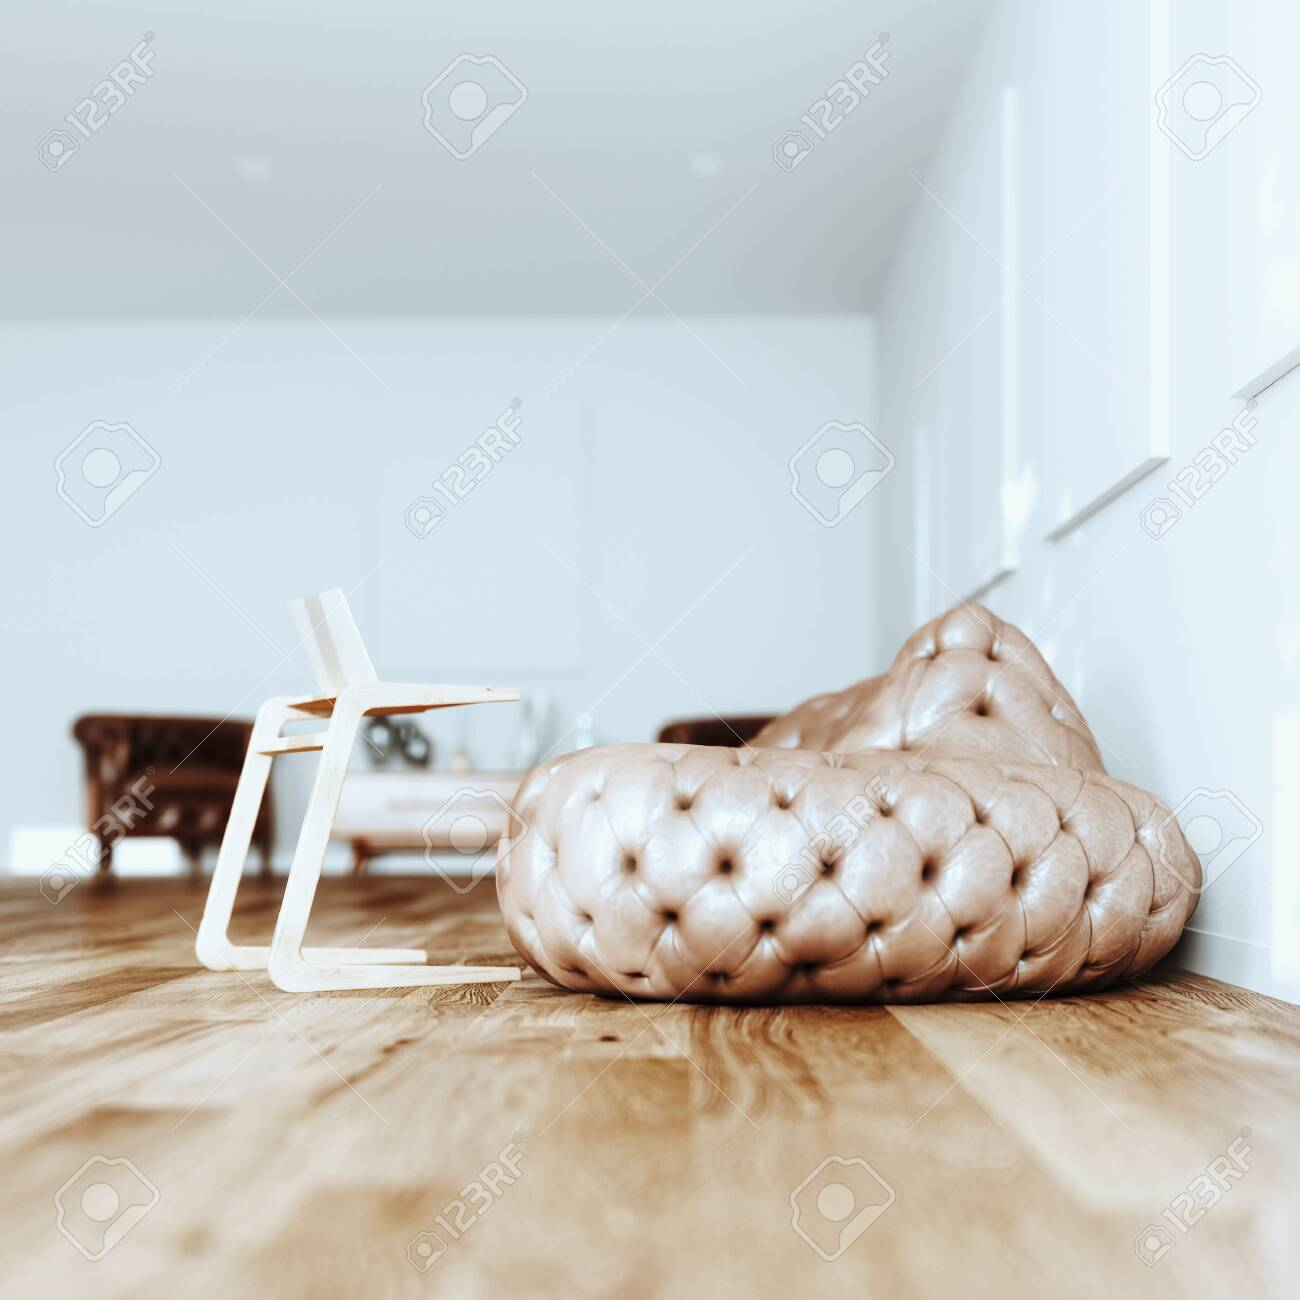 White Scandinavian interior with vintage leather sofa and wooden..